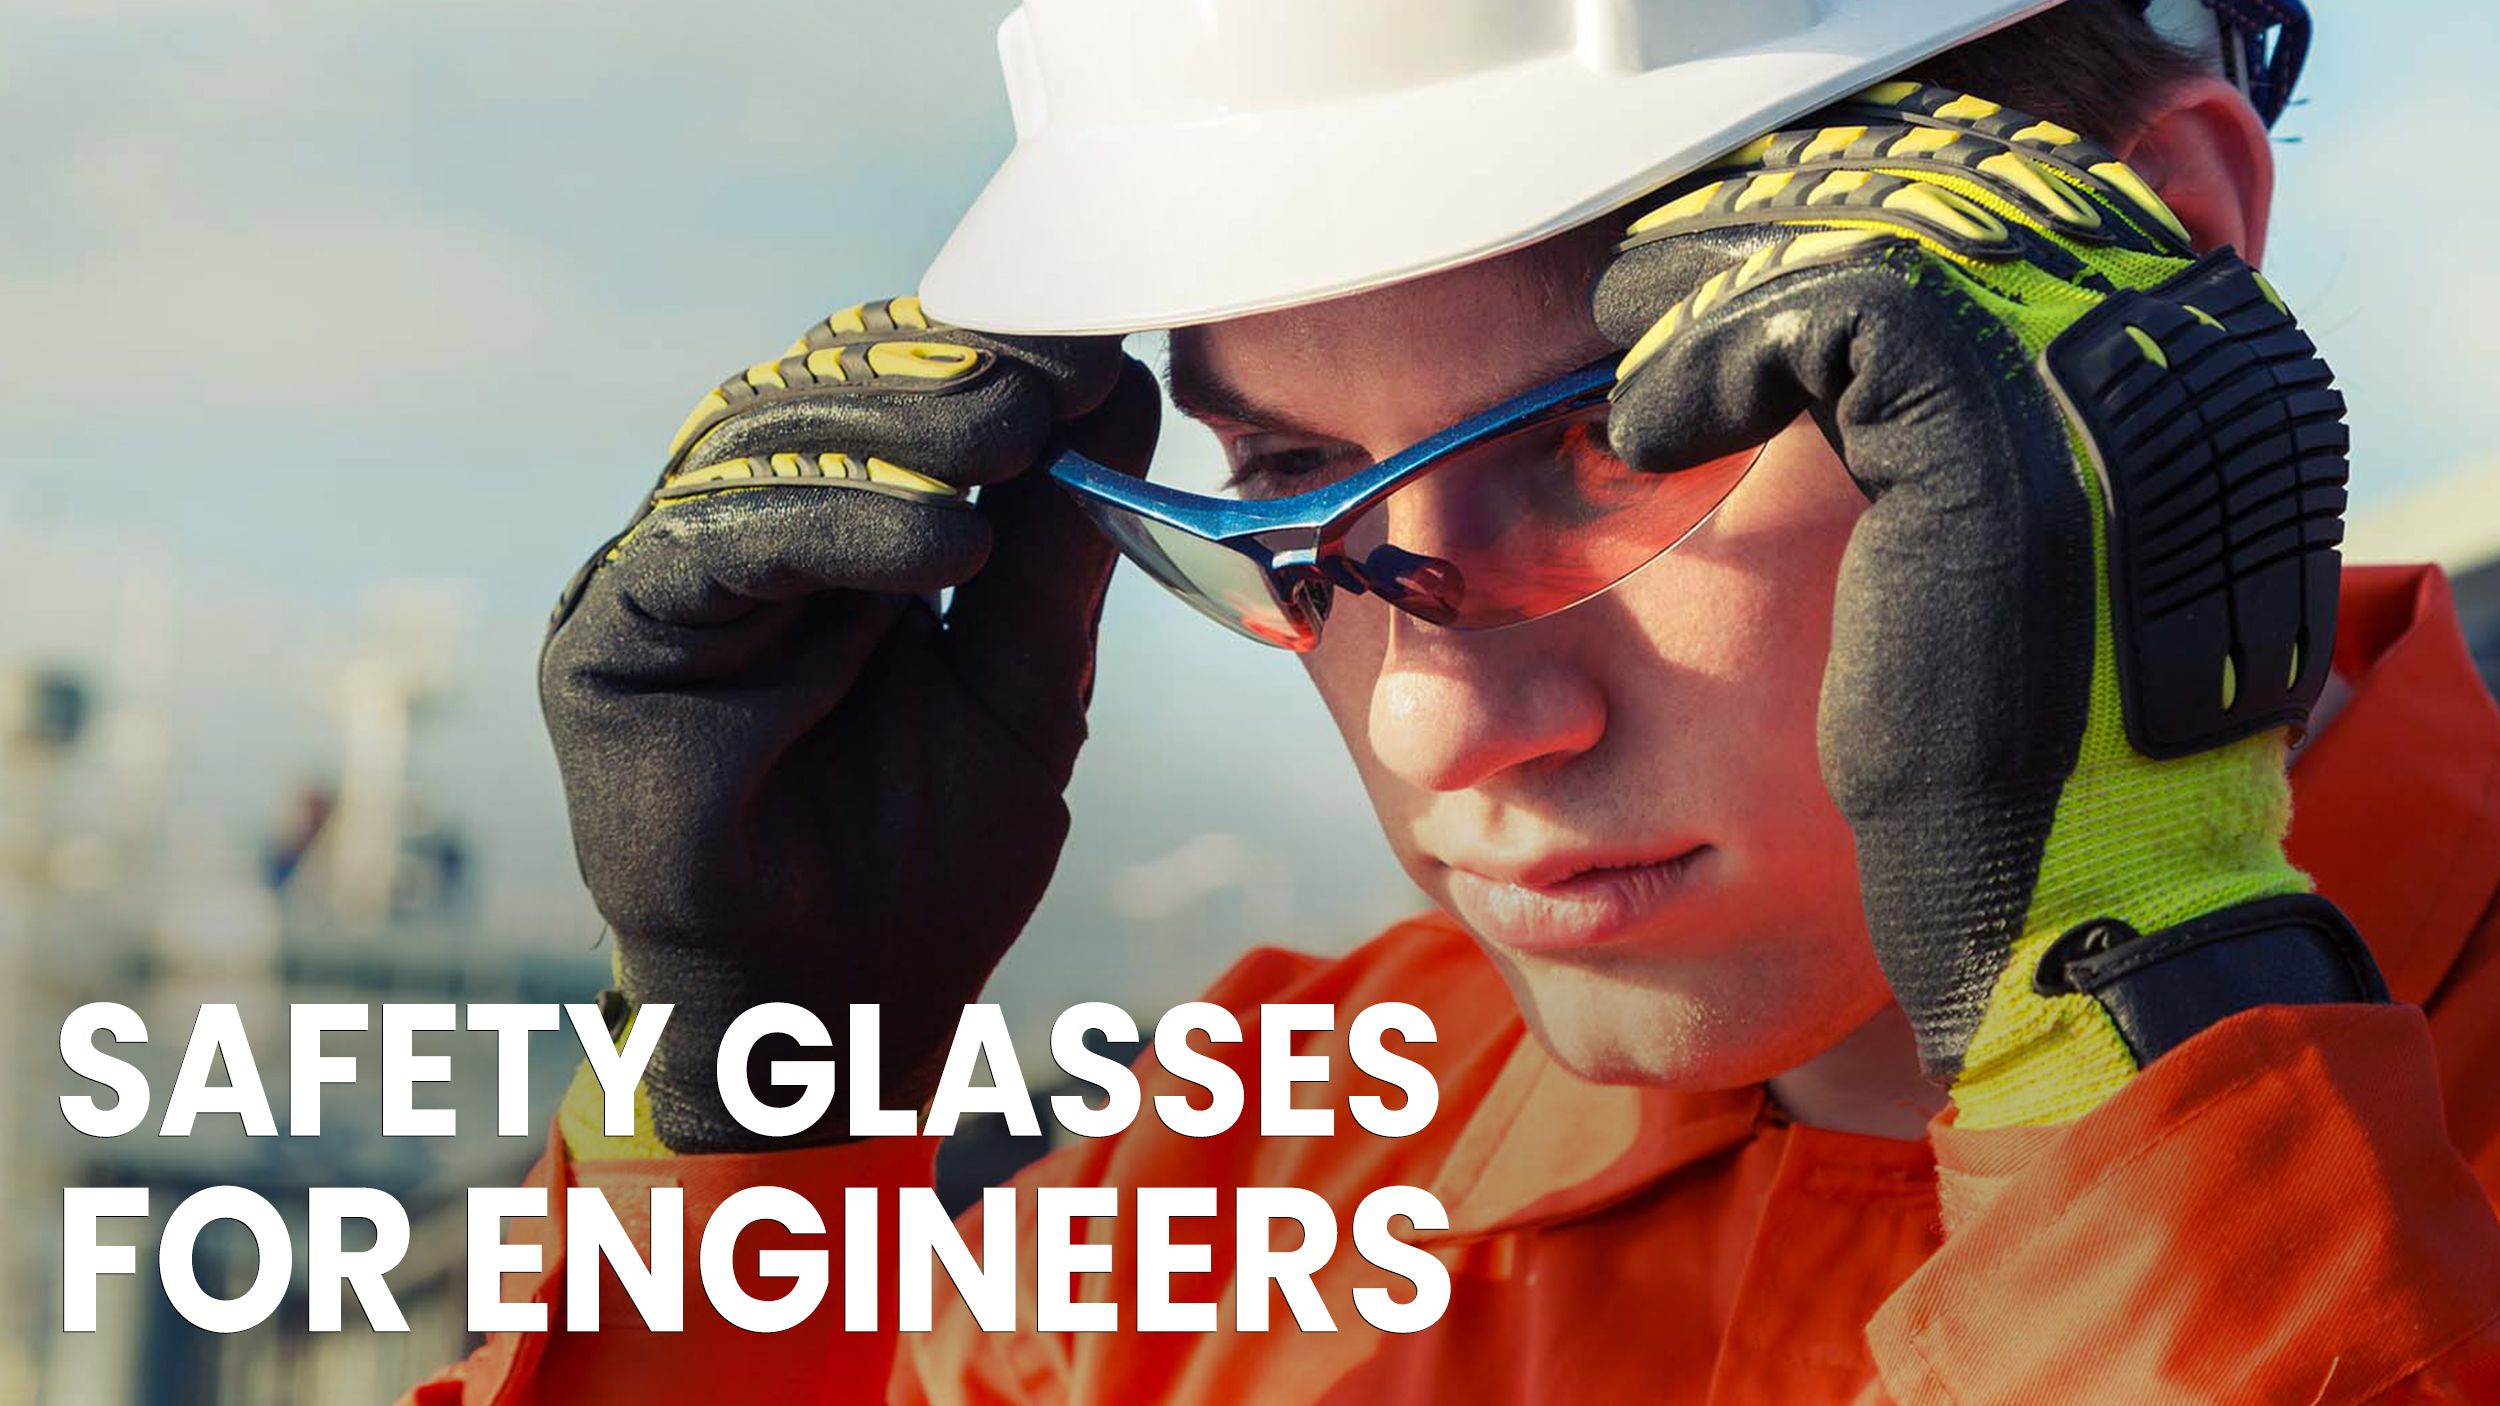 safety glasses for engineers header